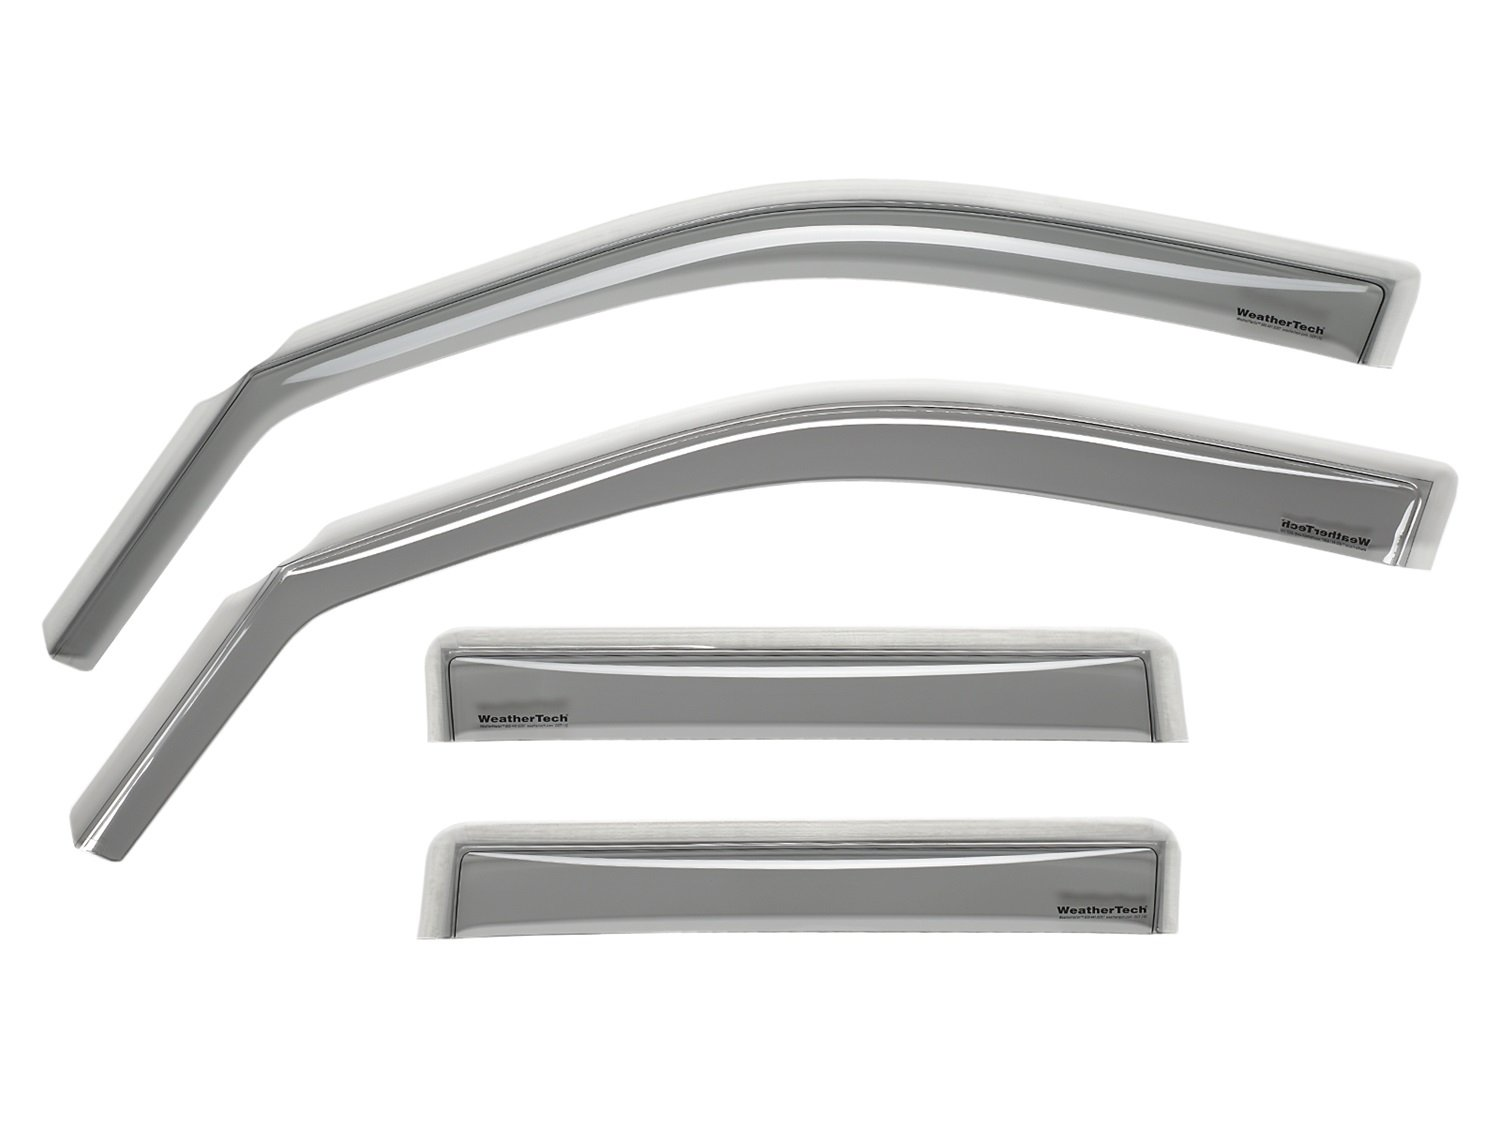 WeatherTech Custom Fit Front & Rear Side Window Deflectors for Volkswagen Passat Sedan, Light Smoke 72098